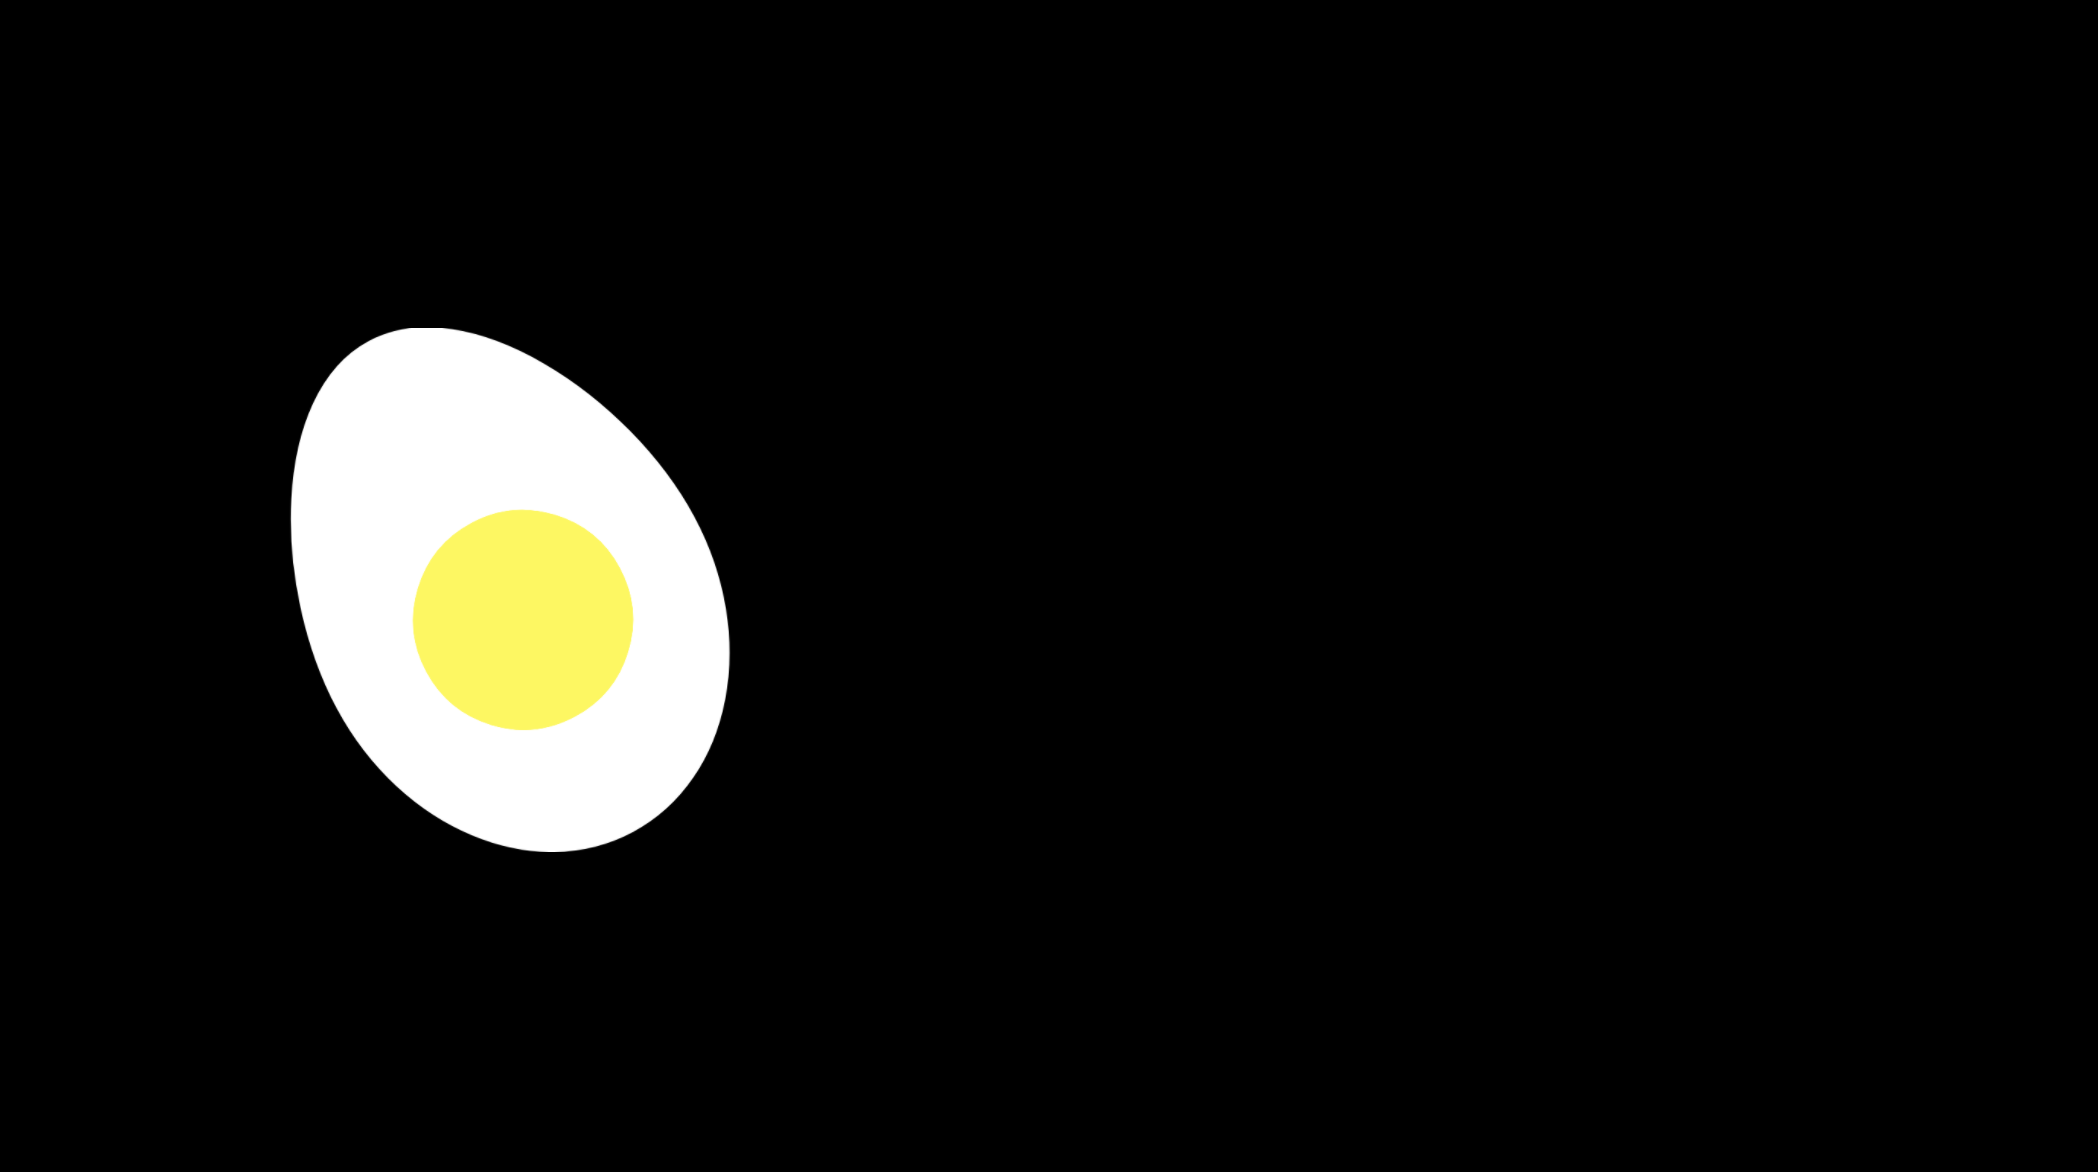 A rolling egg from the web site